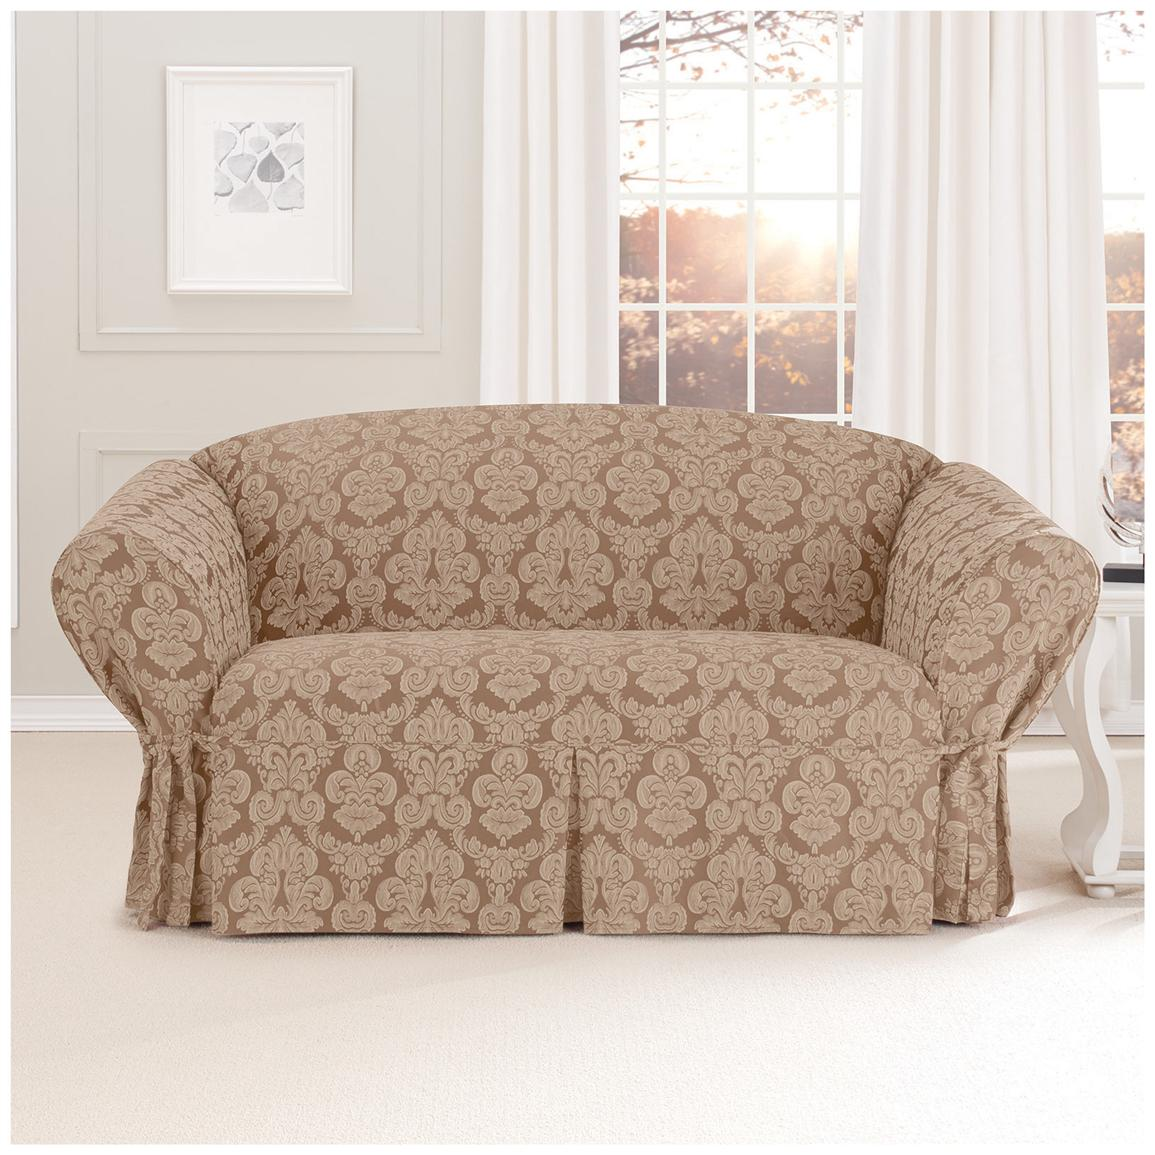 Sure fit middleton loveseat slipcover 581236 furniture covers at sportsman 39 s guide Loveseat slipcover